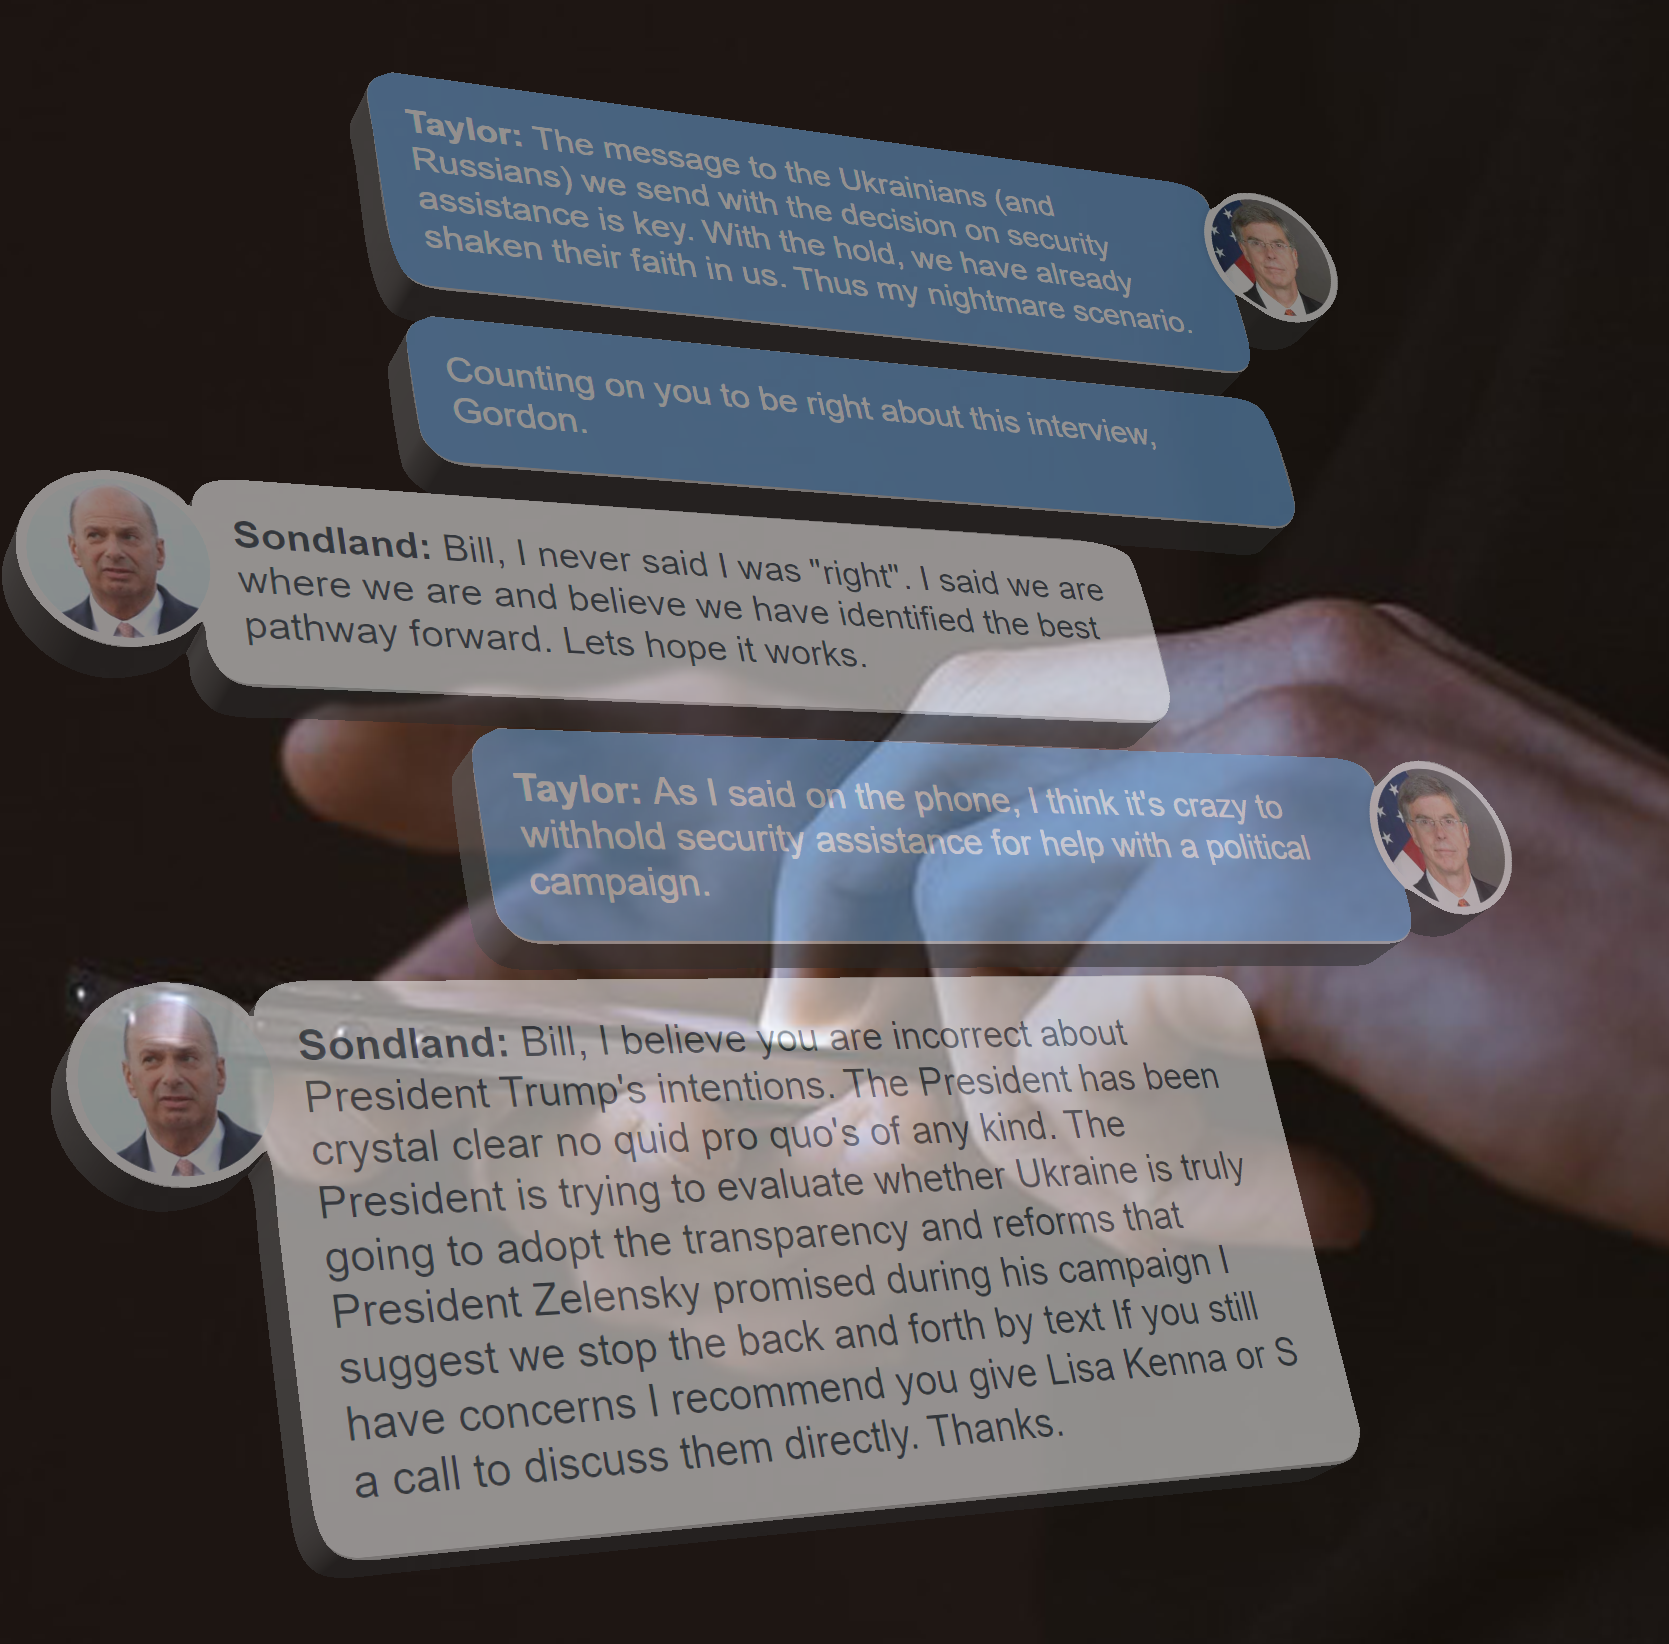 Texts between Gordon Sondland and William Taylor are superimposed over a hand holding a mobile phone